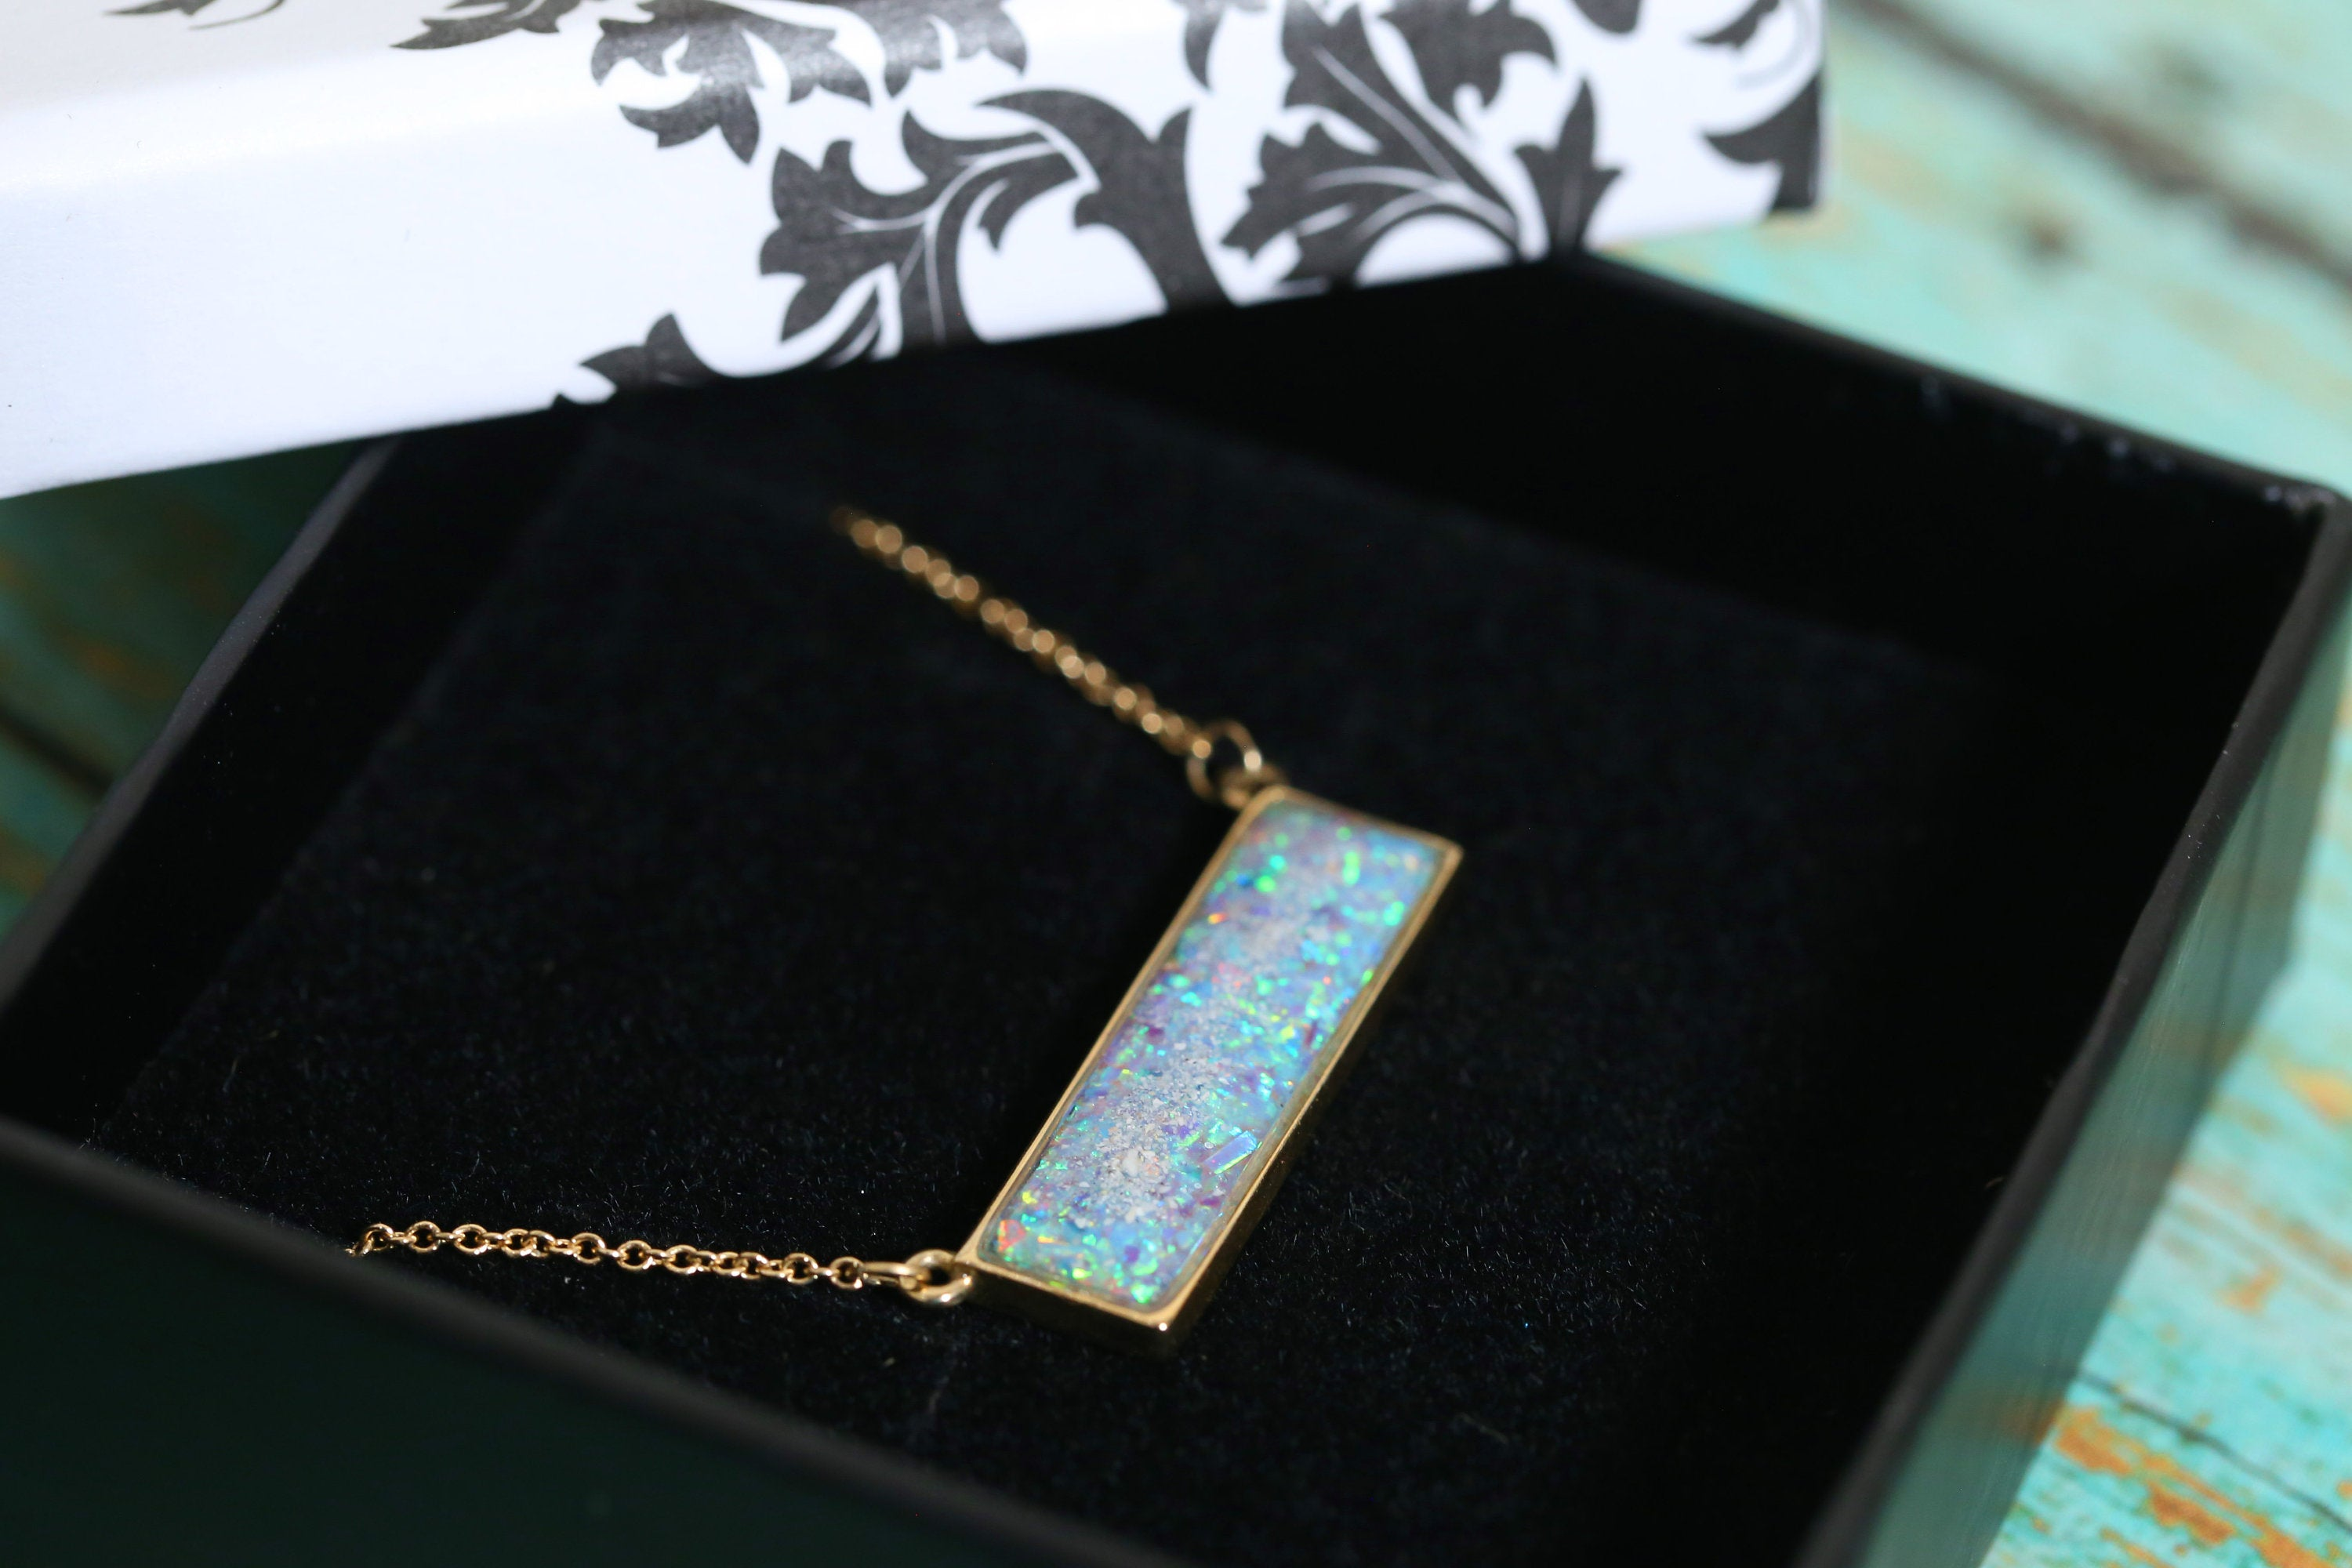 14k Yellow Gold Bar Cremation Necklace - Opal and Gold Bar Necklace - Cremation Jewelry - Ash Jewelry - Urn Necklace - Pet Loss